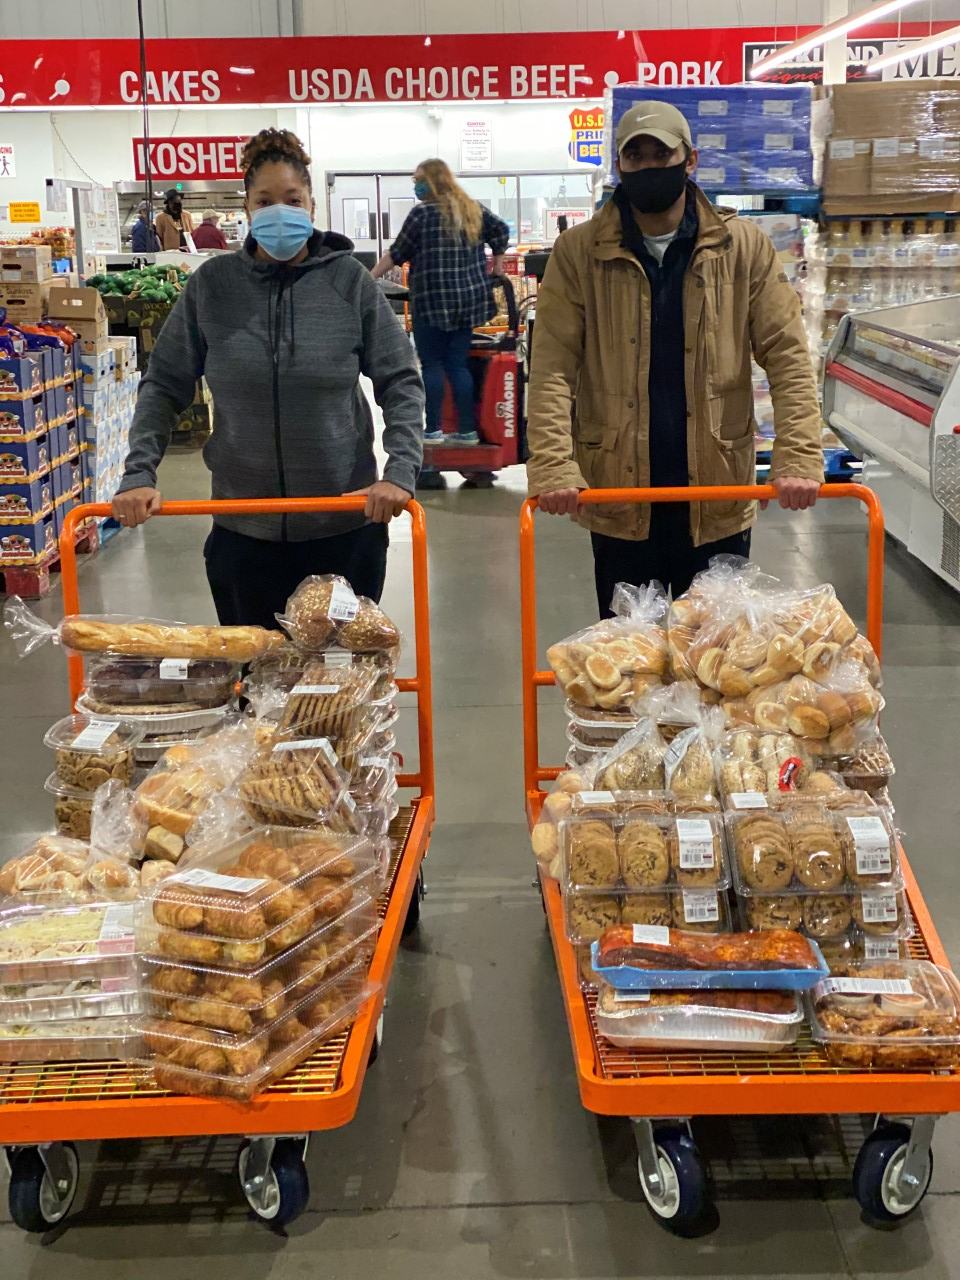 Annual Costco Trip for MyPlace and MDH Clients